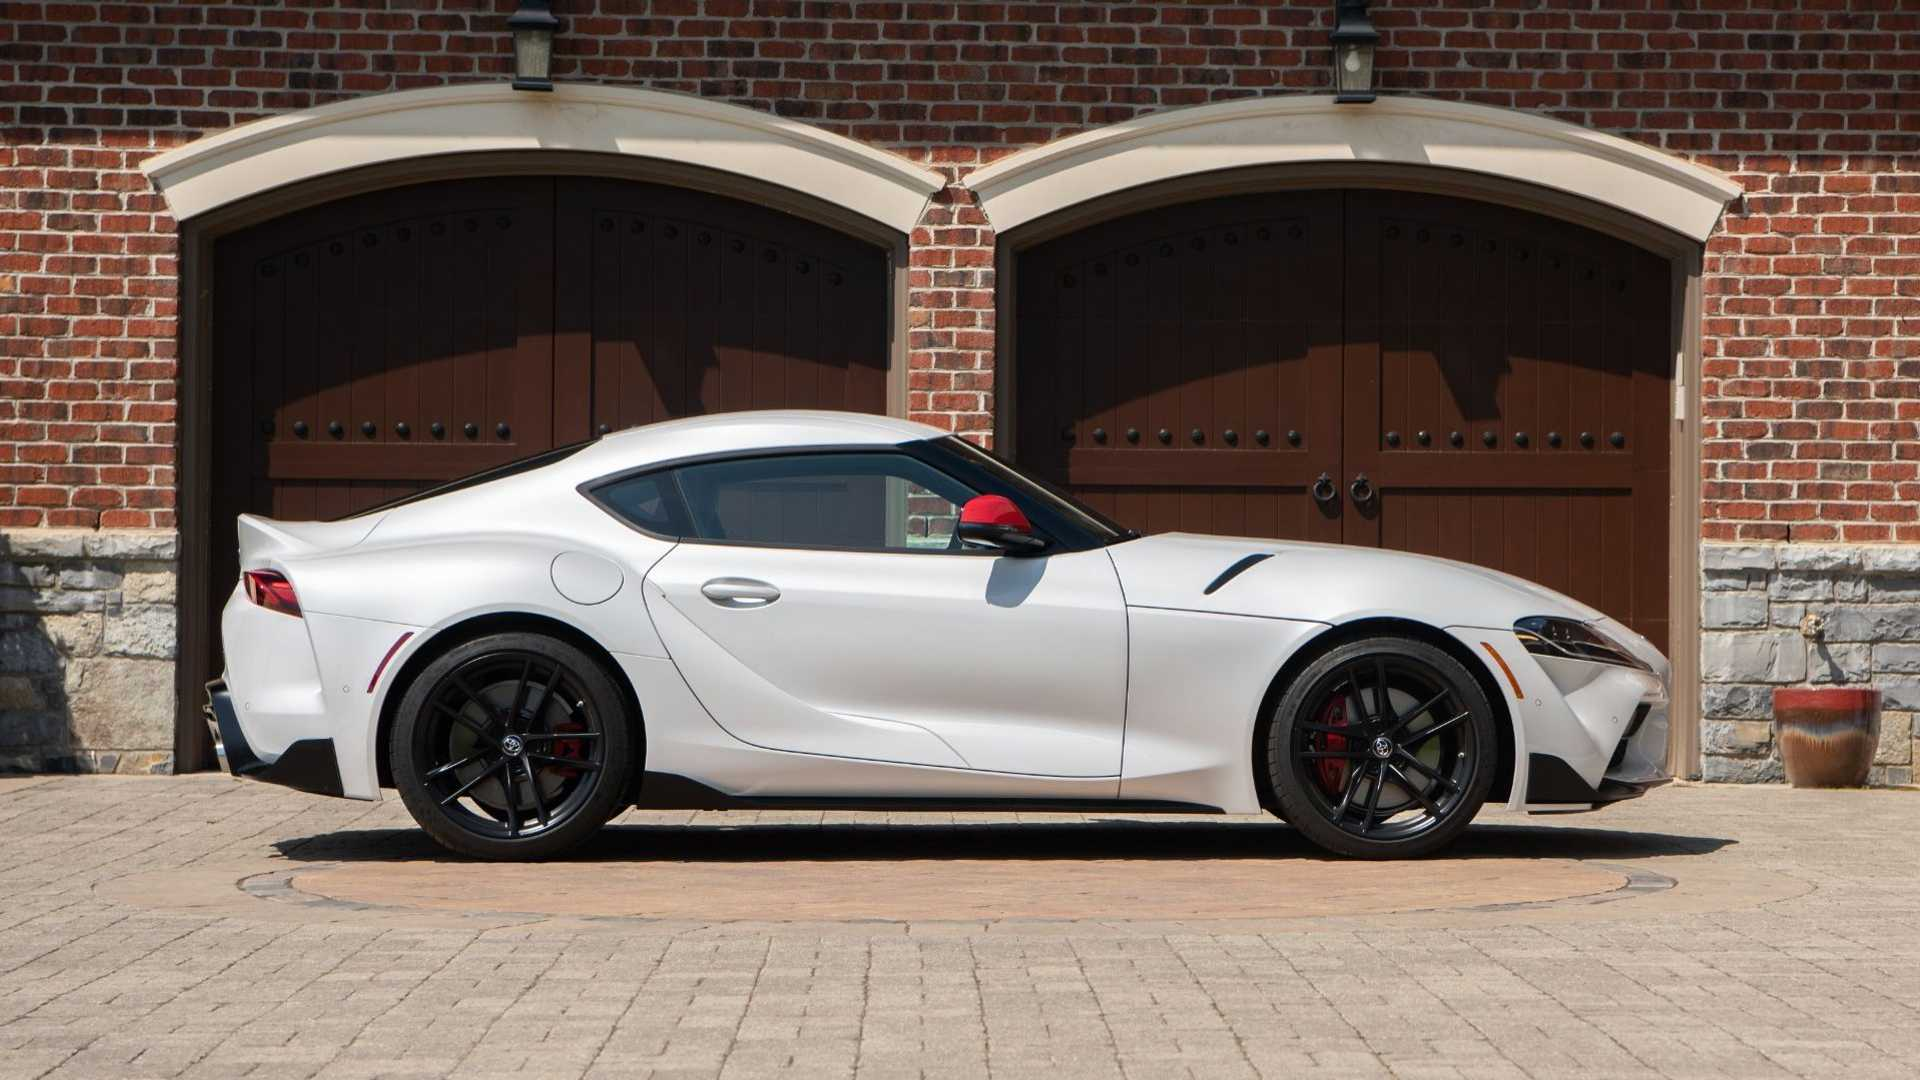 66 Best Pictures Of The 2020 Toyota Supra Images